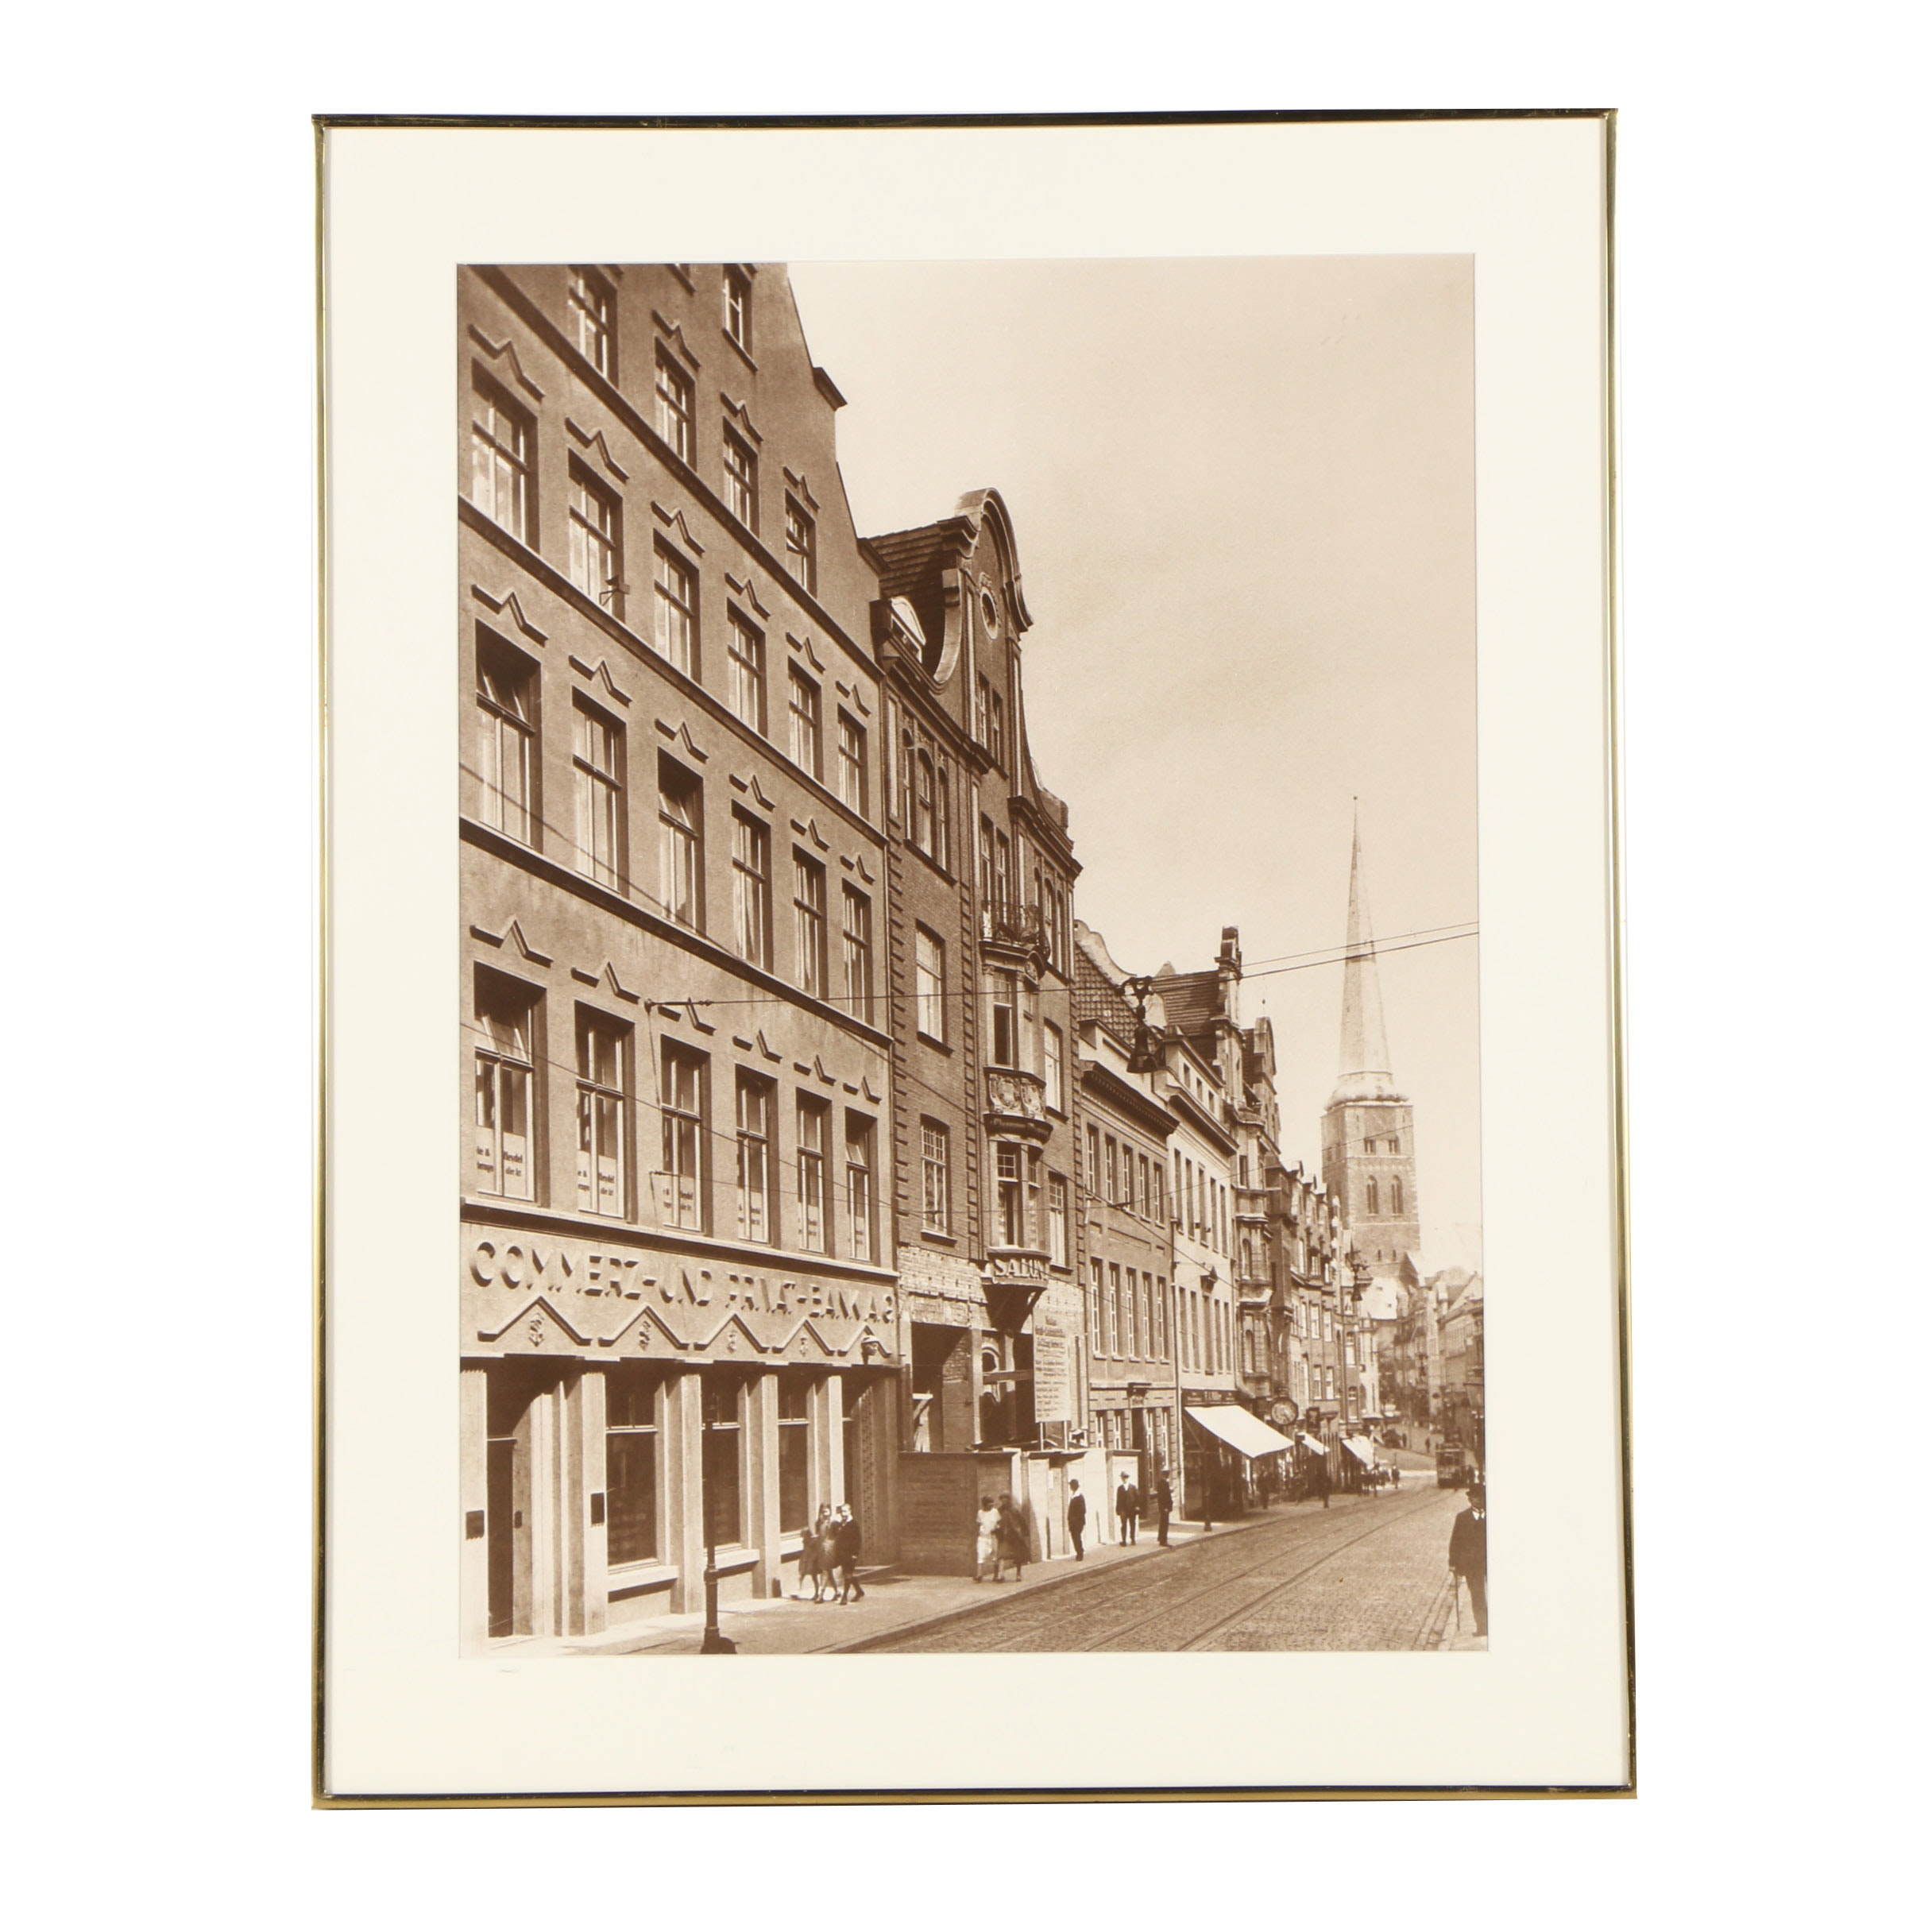 Digital Photograph After Early 20th Century Street Scene